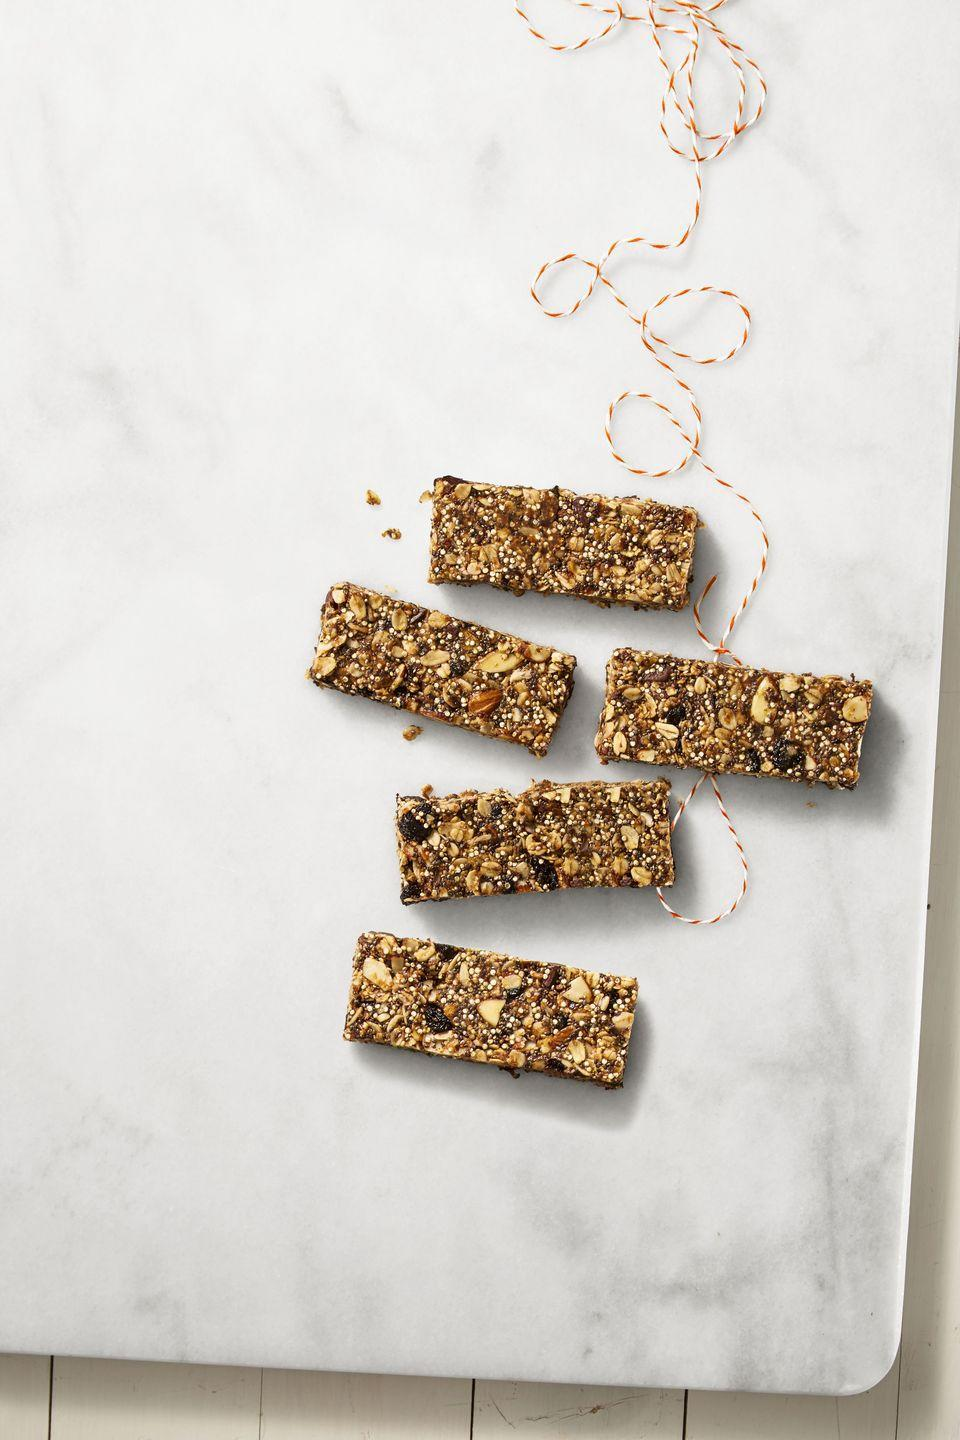 "<p>There are so many good-for-you ingredients hidden in these chocolatey treats.</p><p><a href=""https://www.goodhousekeeping.com/food-recipes/a40525/choco-cherry-supercarb-bars-recipe/"" rel=""nofollow noopener"" target=""_blank"" data-ylk=""slk:Get the recipe for Choco-Cherry Supercarb Bars »"" class=""link rapid-noclick-resp""><em>Get the recipe for Choco-Cherry Supercarb Bars »</em></a><br></p>"